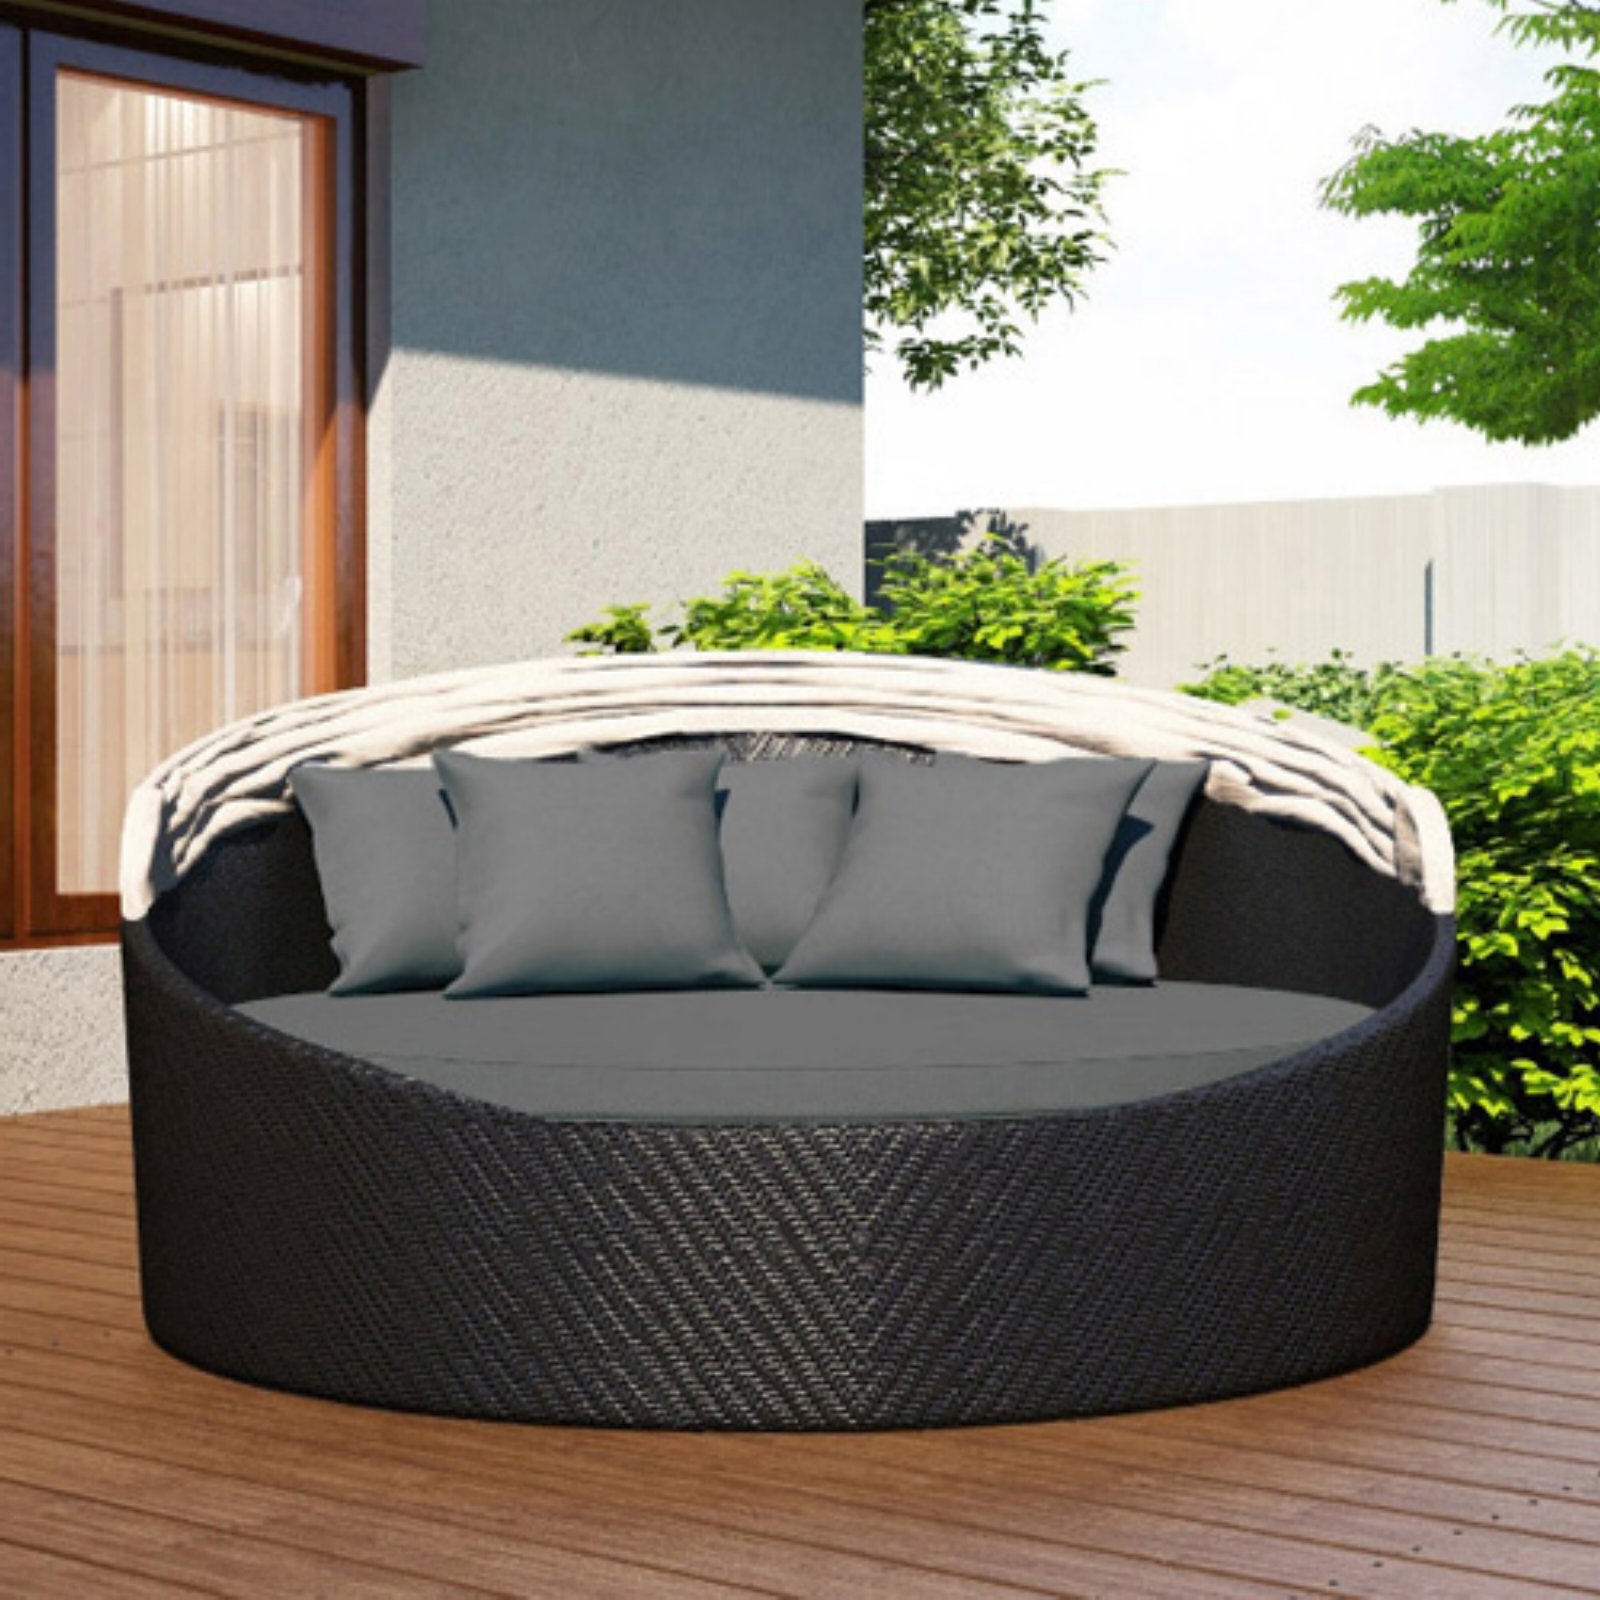 Widely Used Hatley Patio Daybeds With Cushions With Outdoor Harmonia Living Wink Canopy Daybed Sunbrella Heather (View 20 of 20)